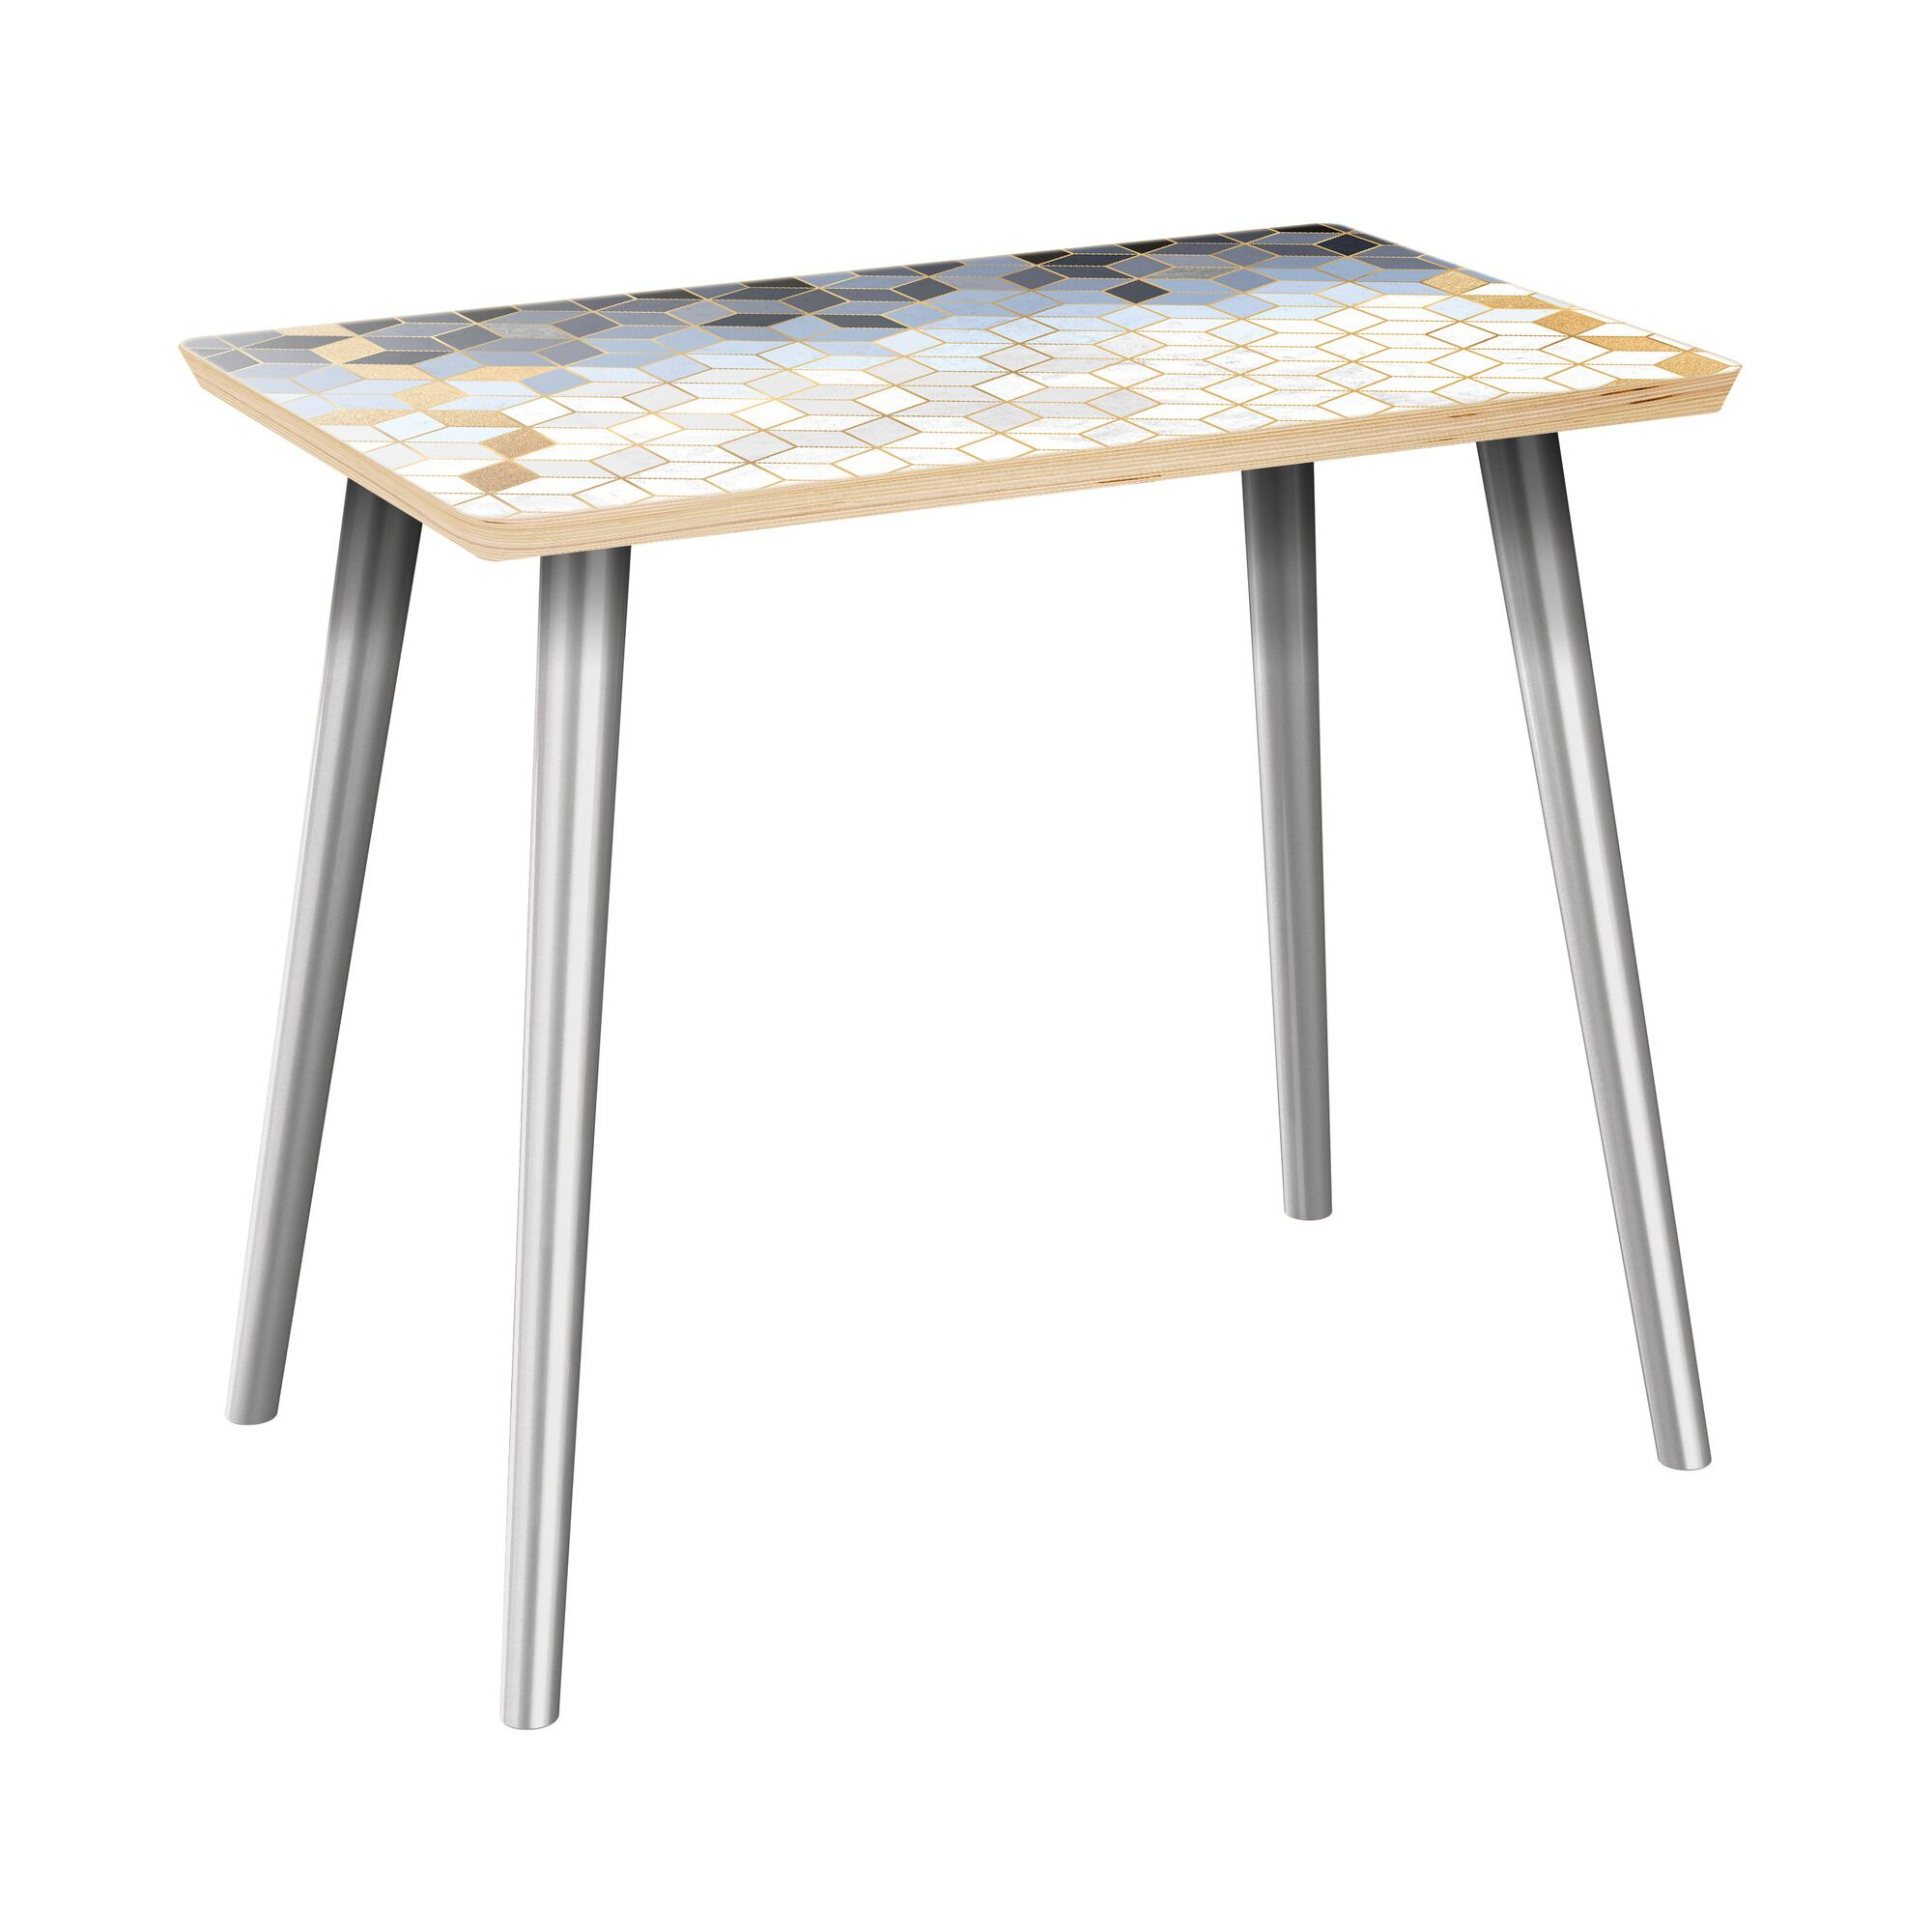 Rucker End Table Table Top Color: Natural, Table Base Color: Chrome